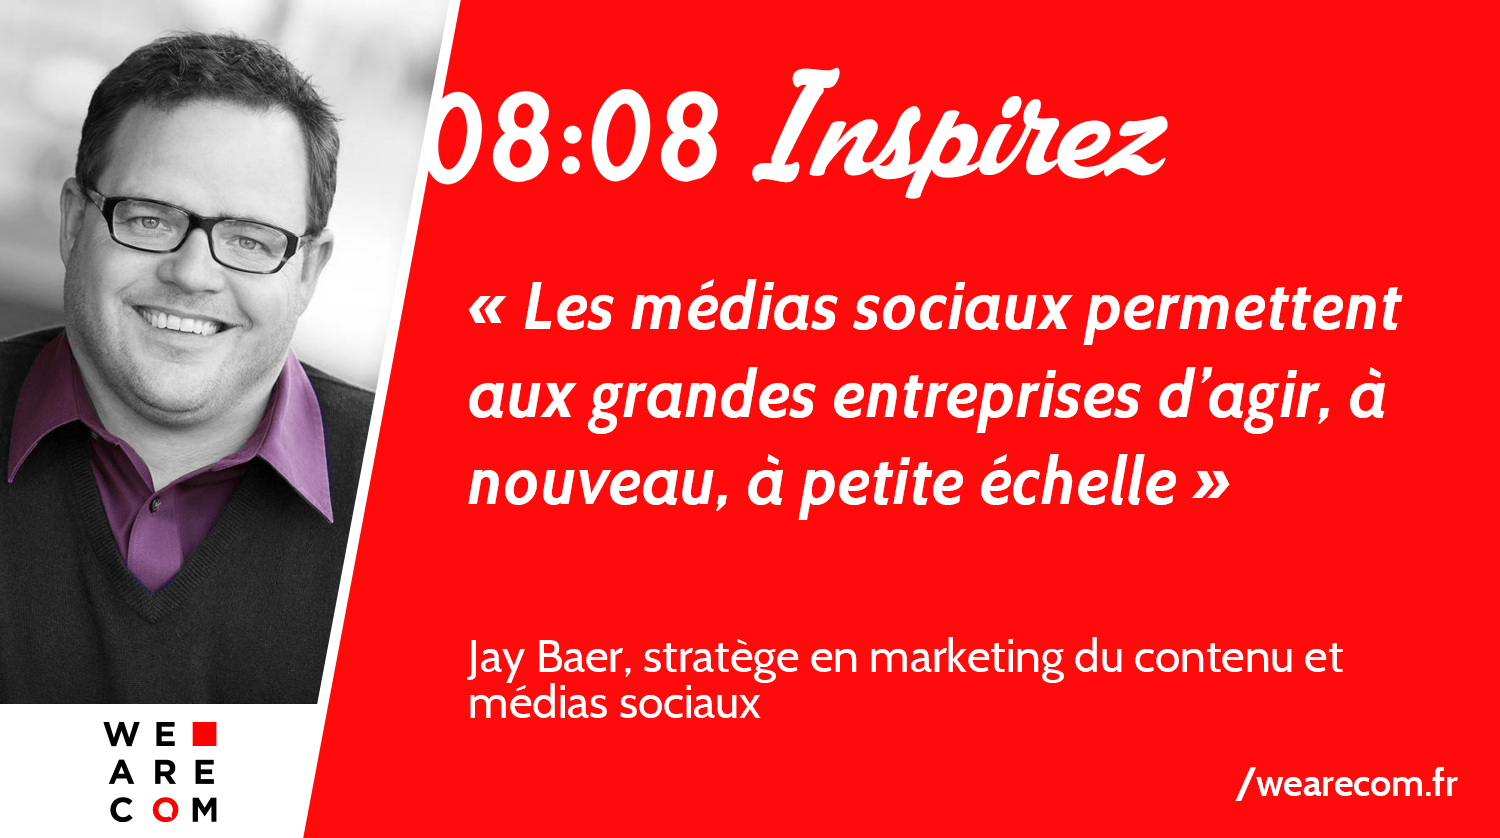 Jay_Baer_citation_communication